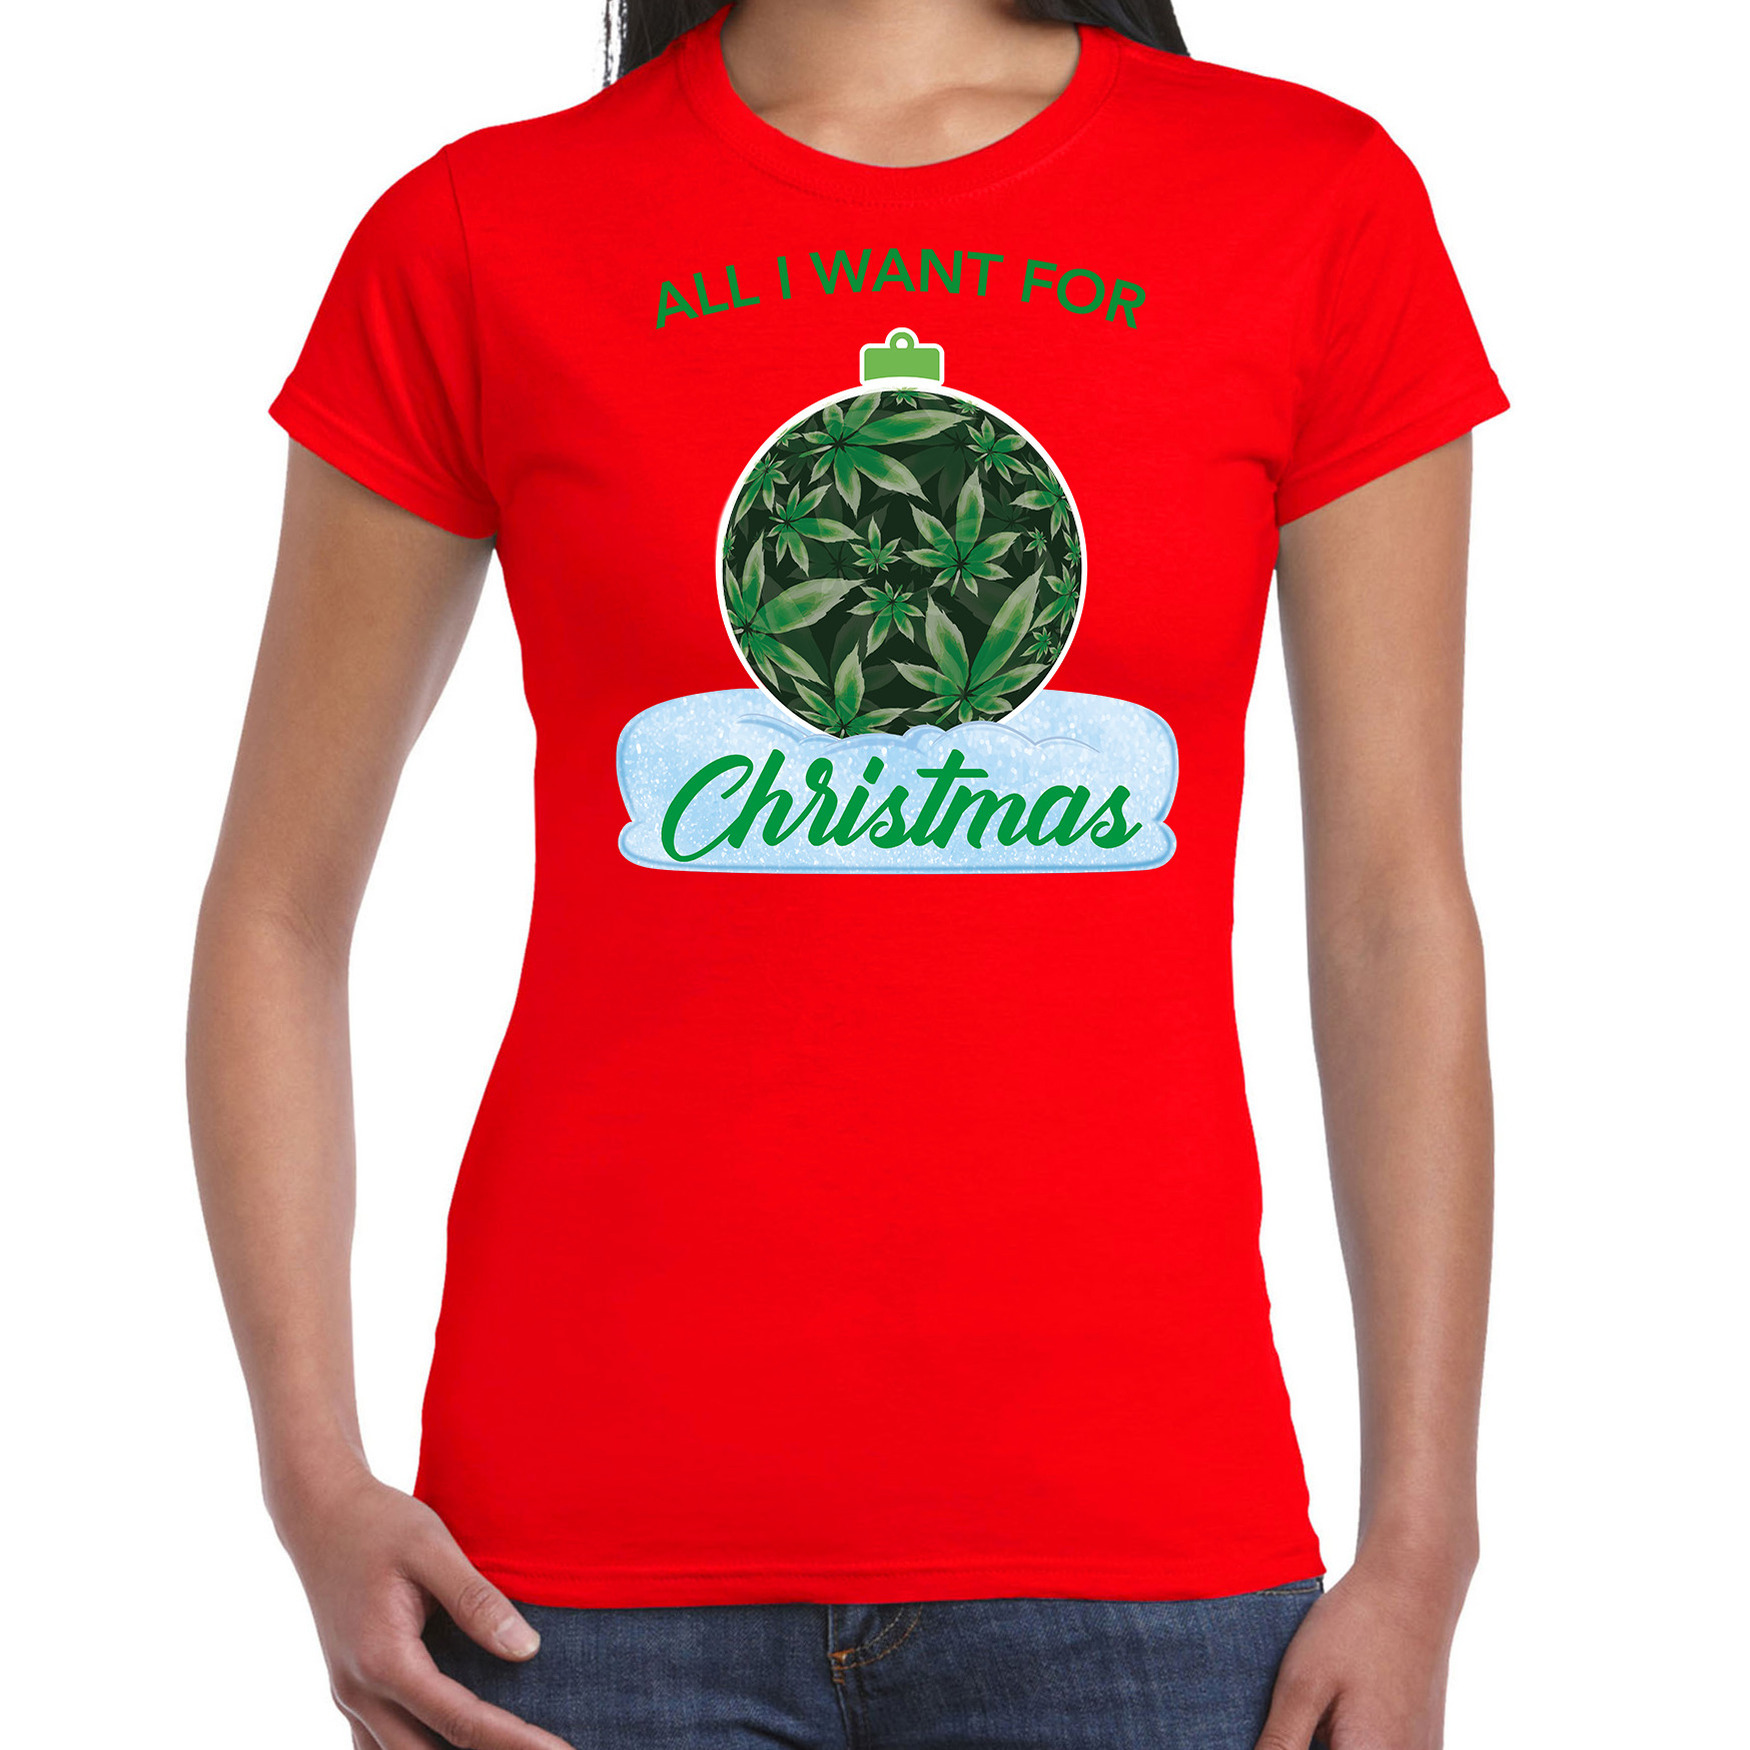 Wiet kerstbal shirt kerst t-shirt all i want for christmas rood voor dames